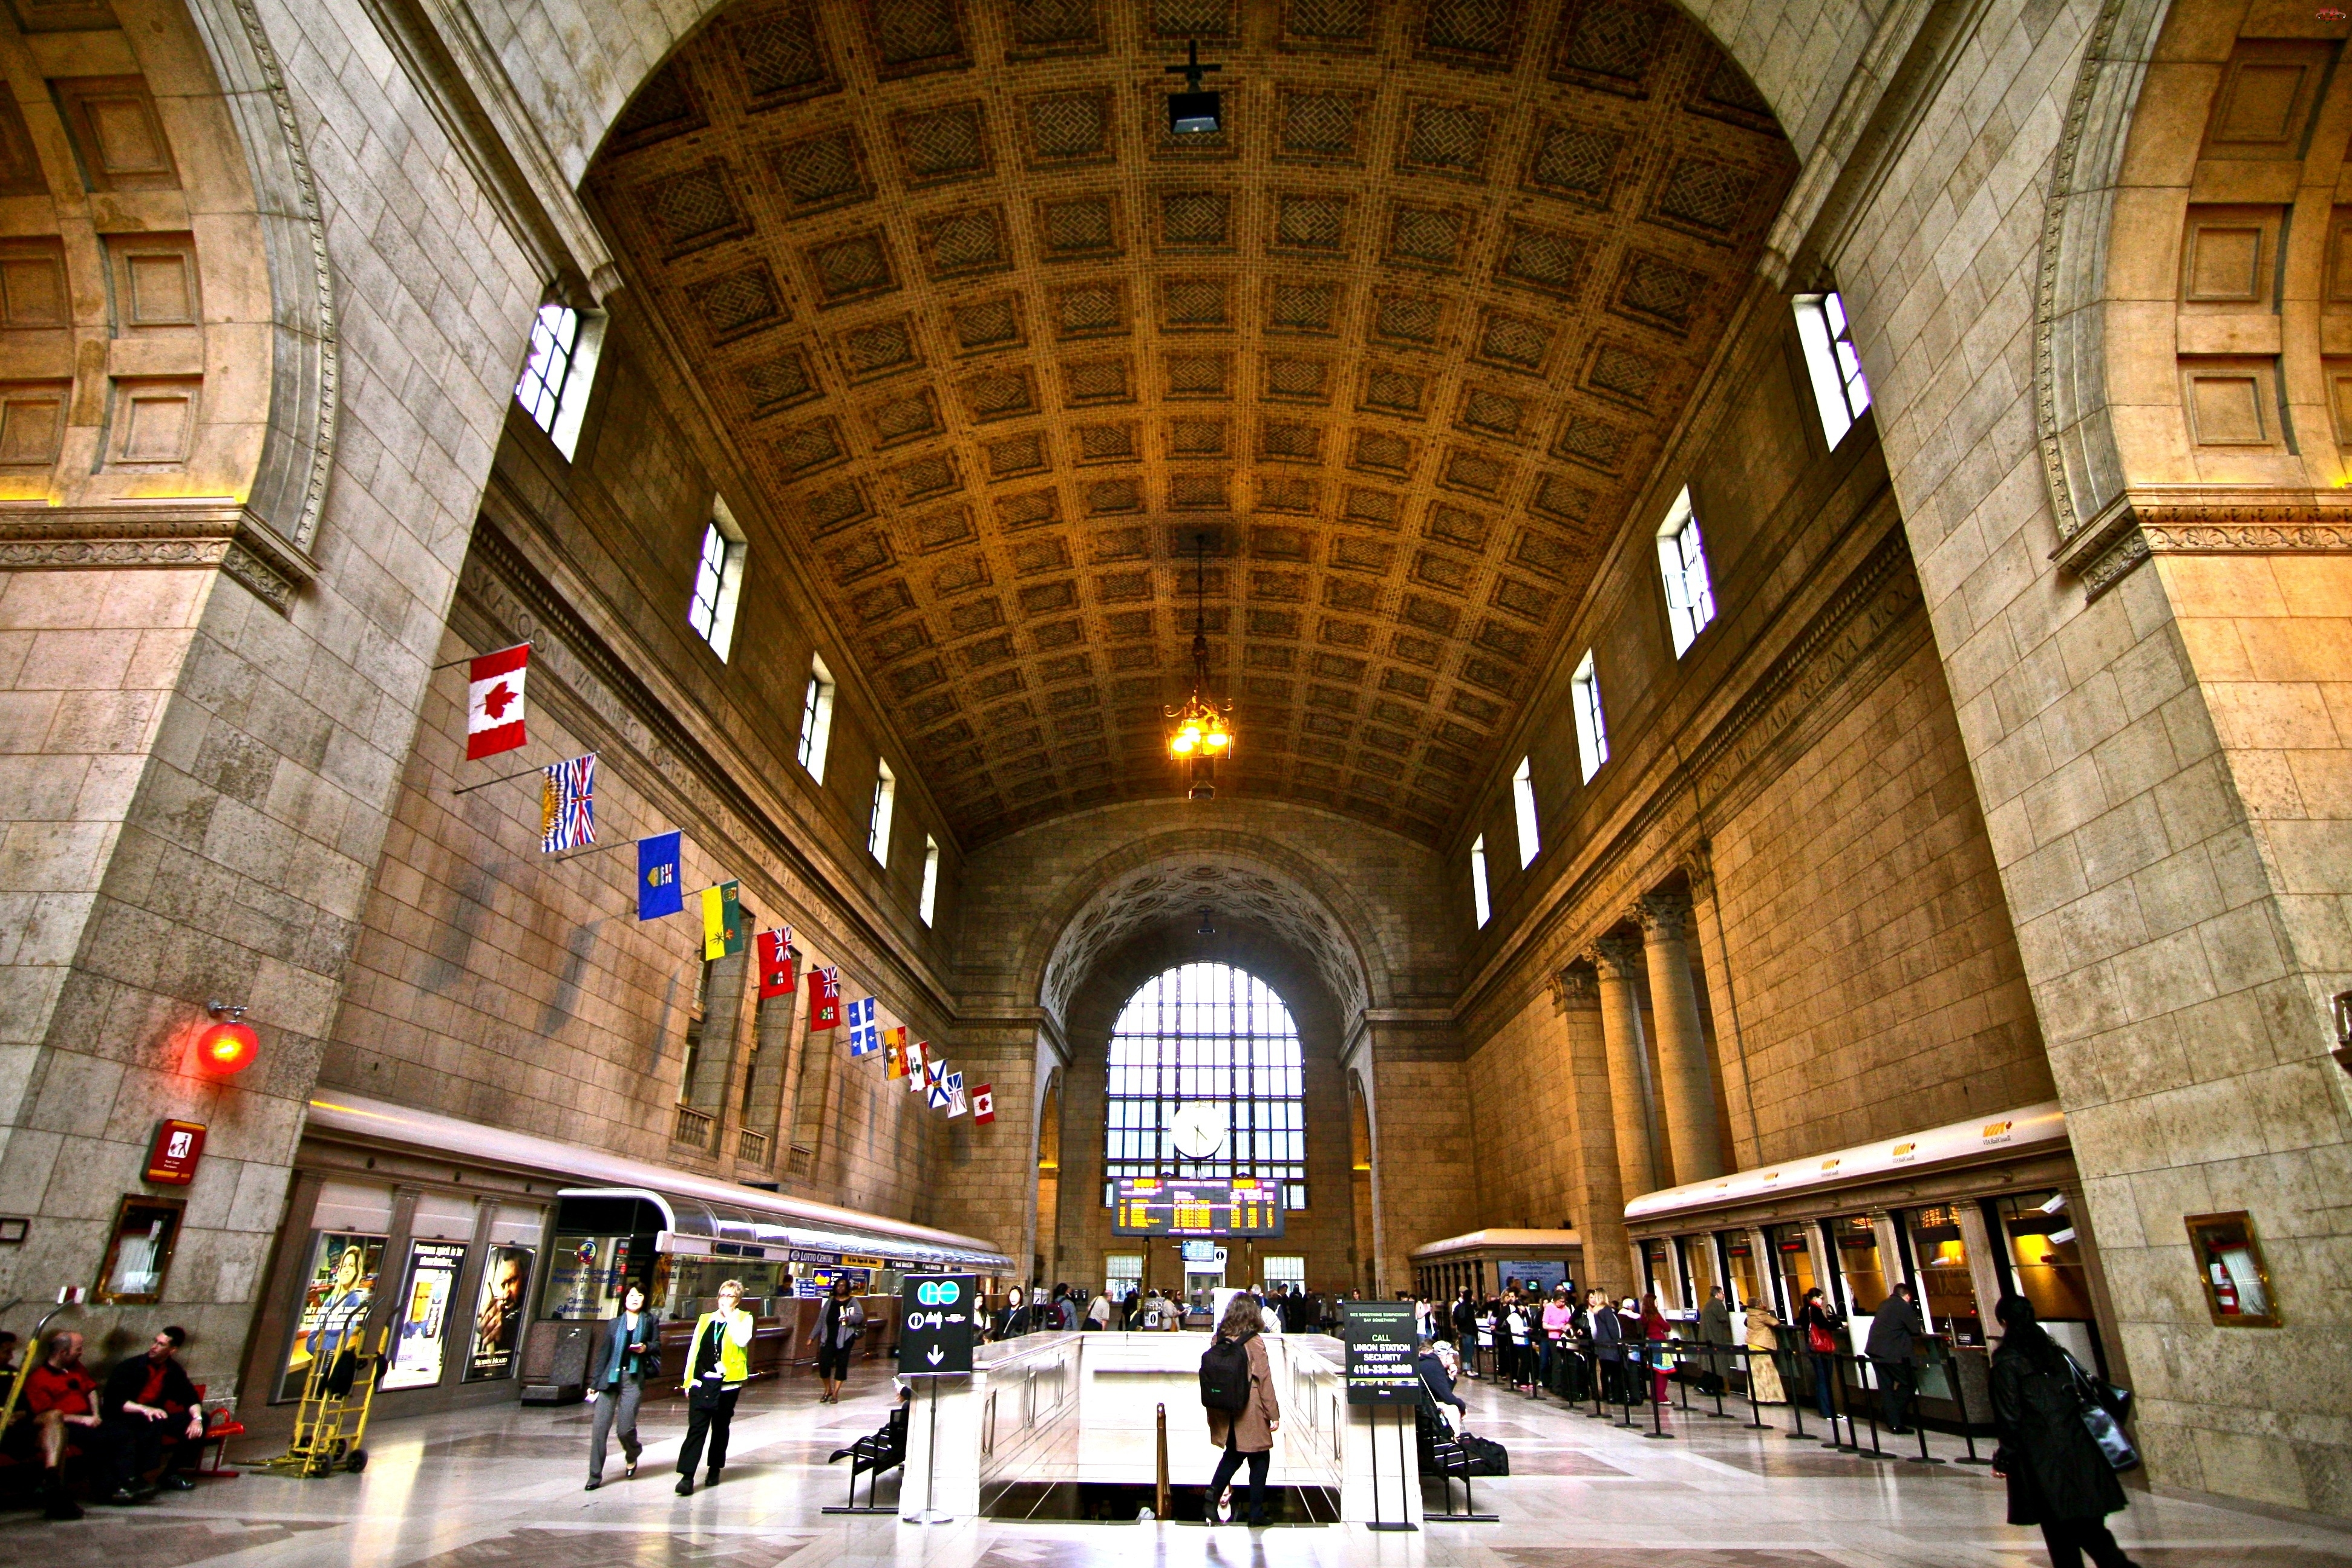 Kanada, Union Station, Great Hall